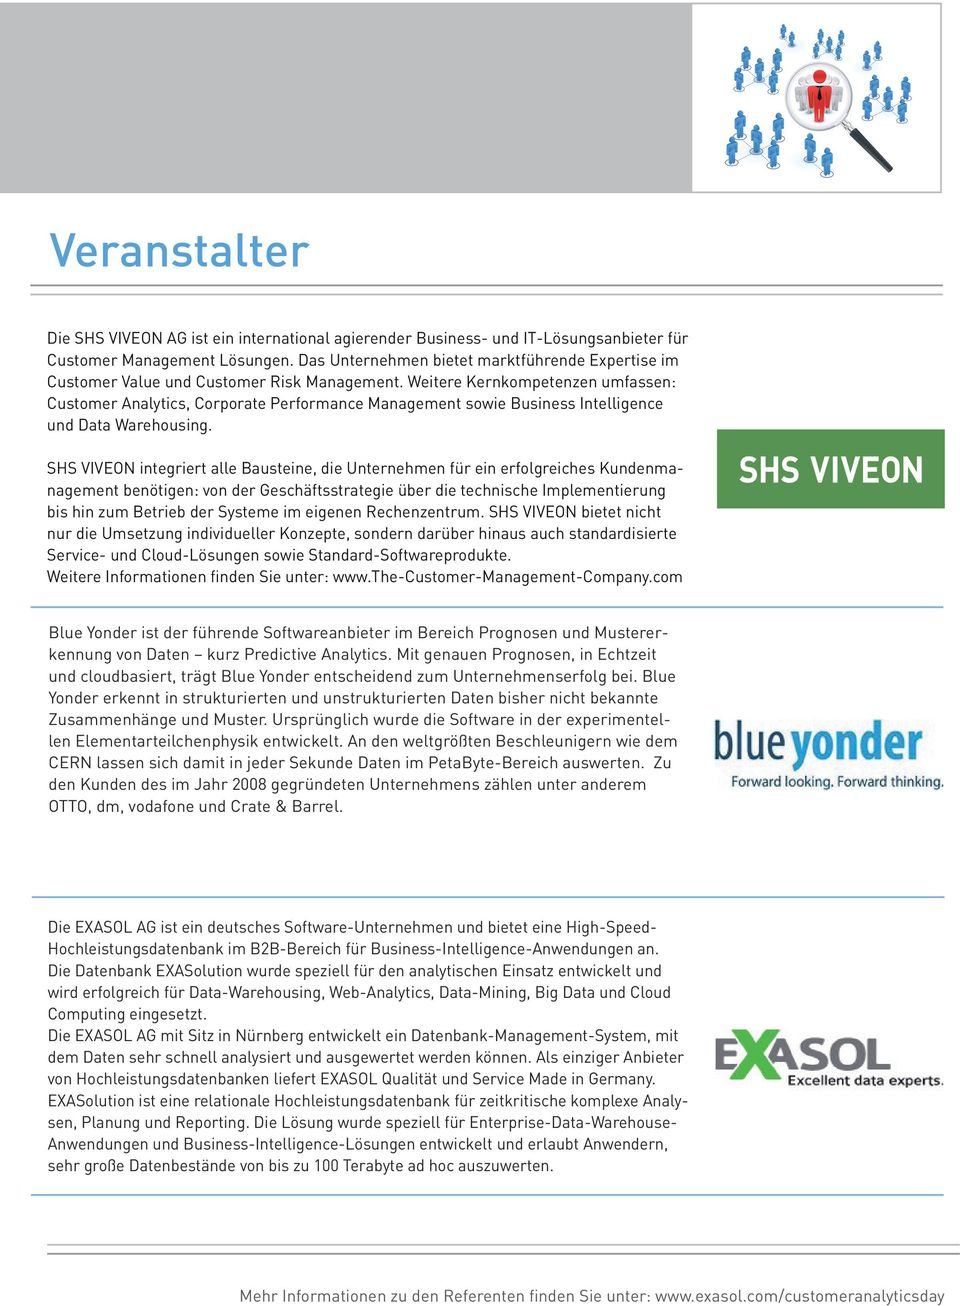 Weitere Kernkompetenzen umfassen: Customer Analytics, Corporate Performance Management sowie Business Intelligence und Data Warehousing.